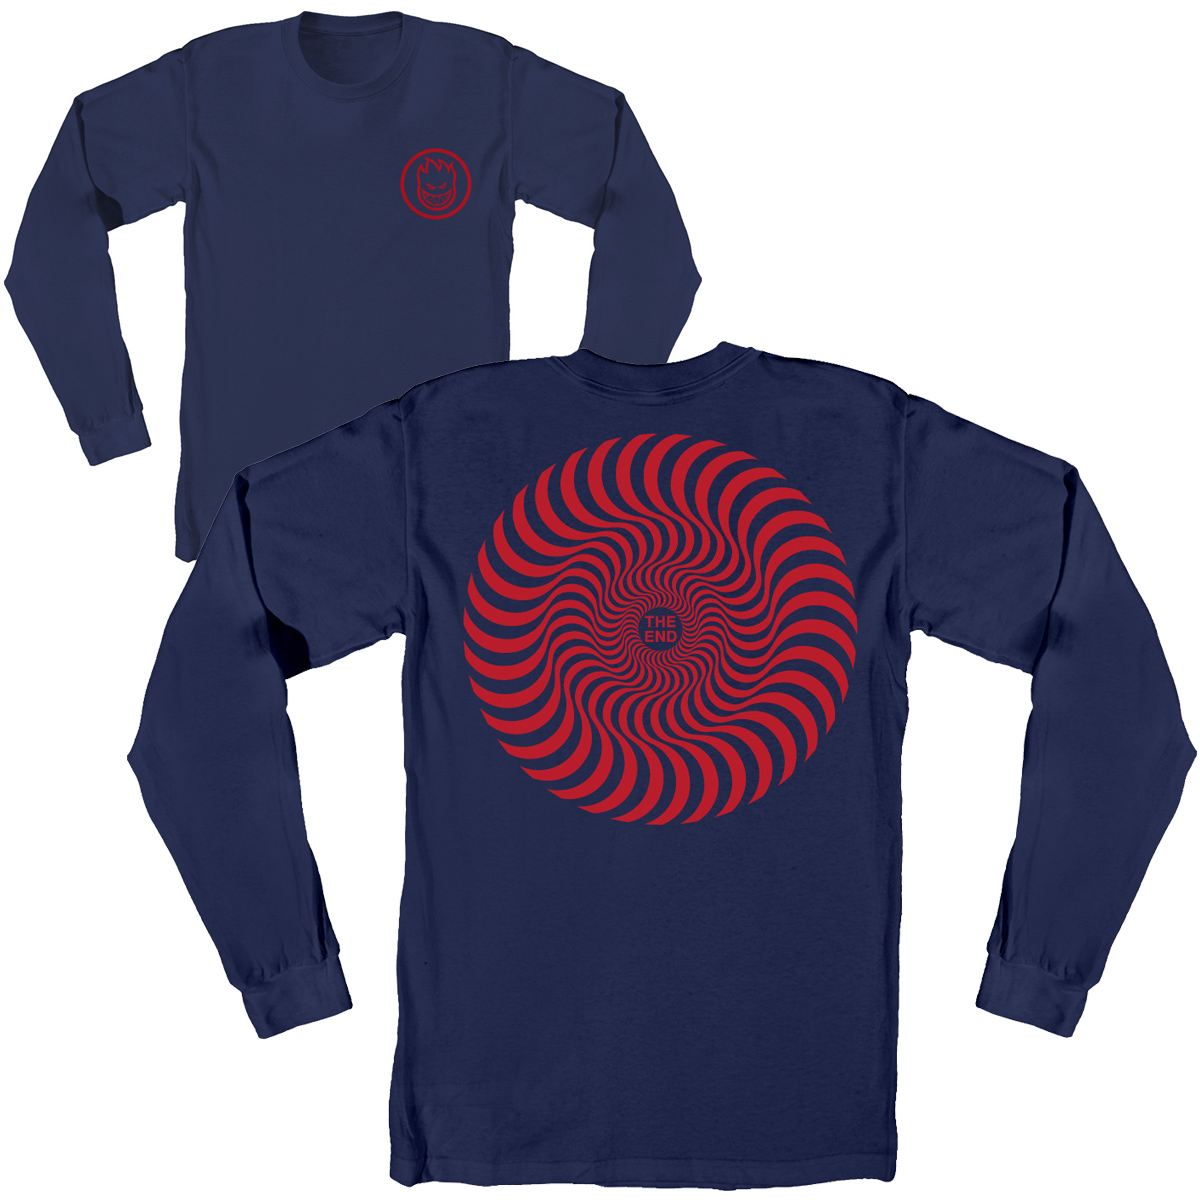 SF LS TEE CLSC SWIRL NVY XL - Click to enlarge